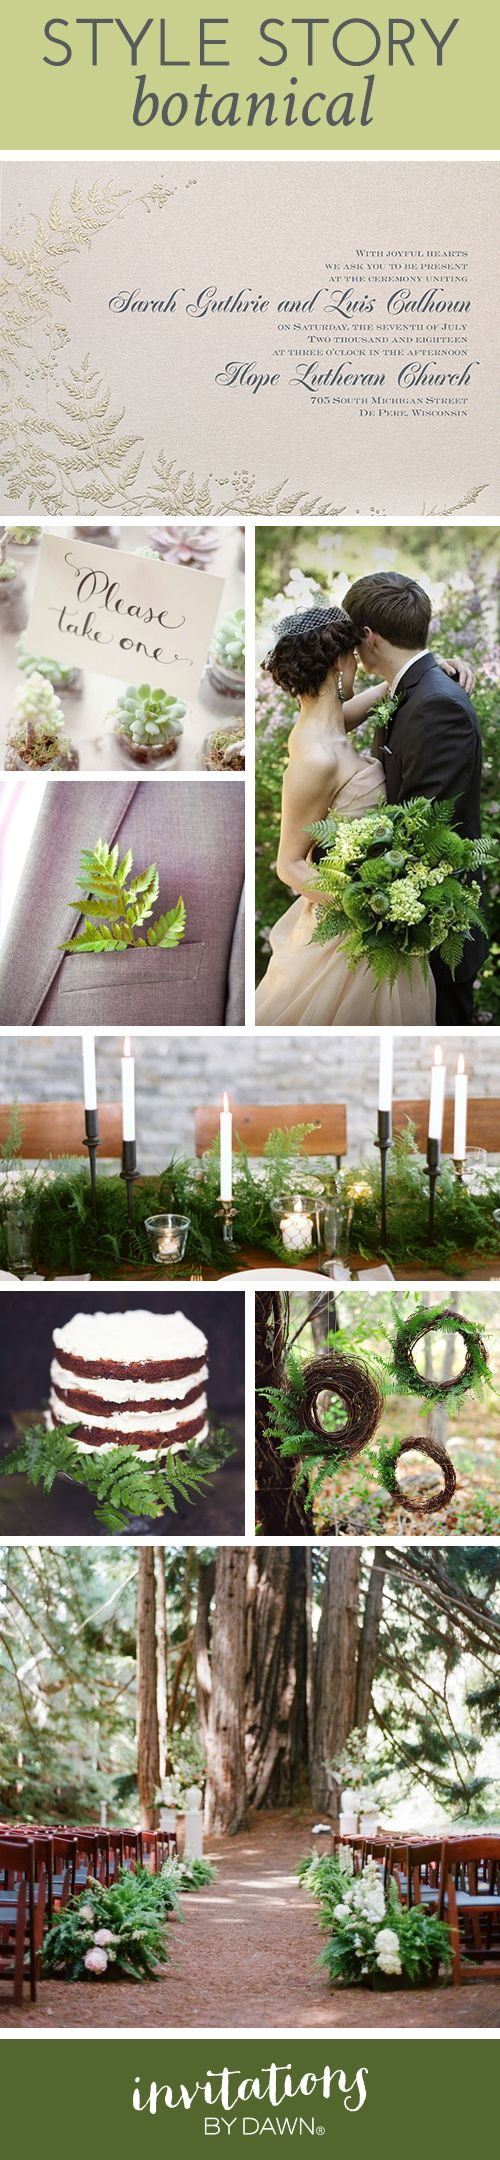 Wedding Style Story: Botanical Ferns #rusticwedding #loveyourinvites